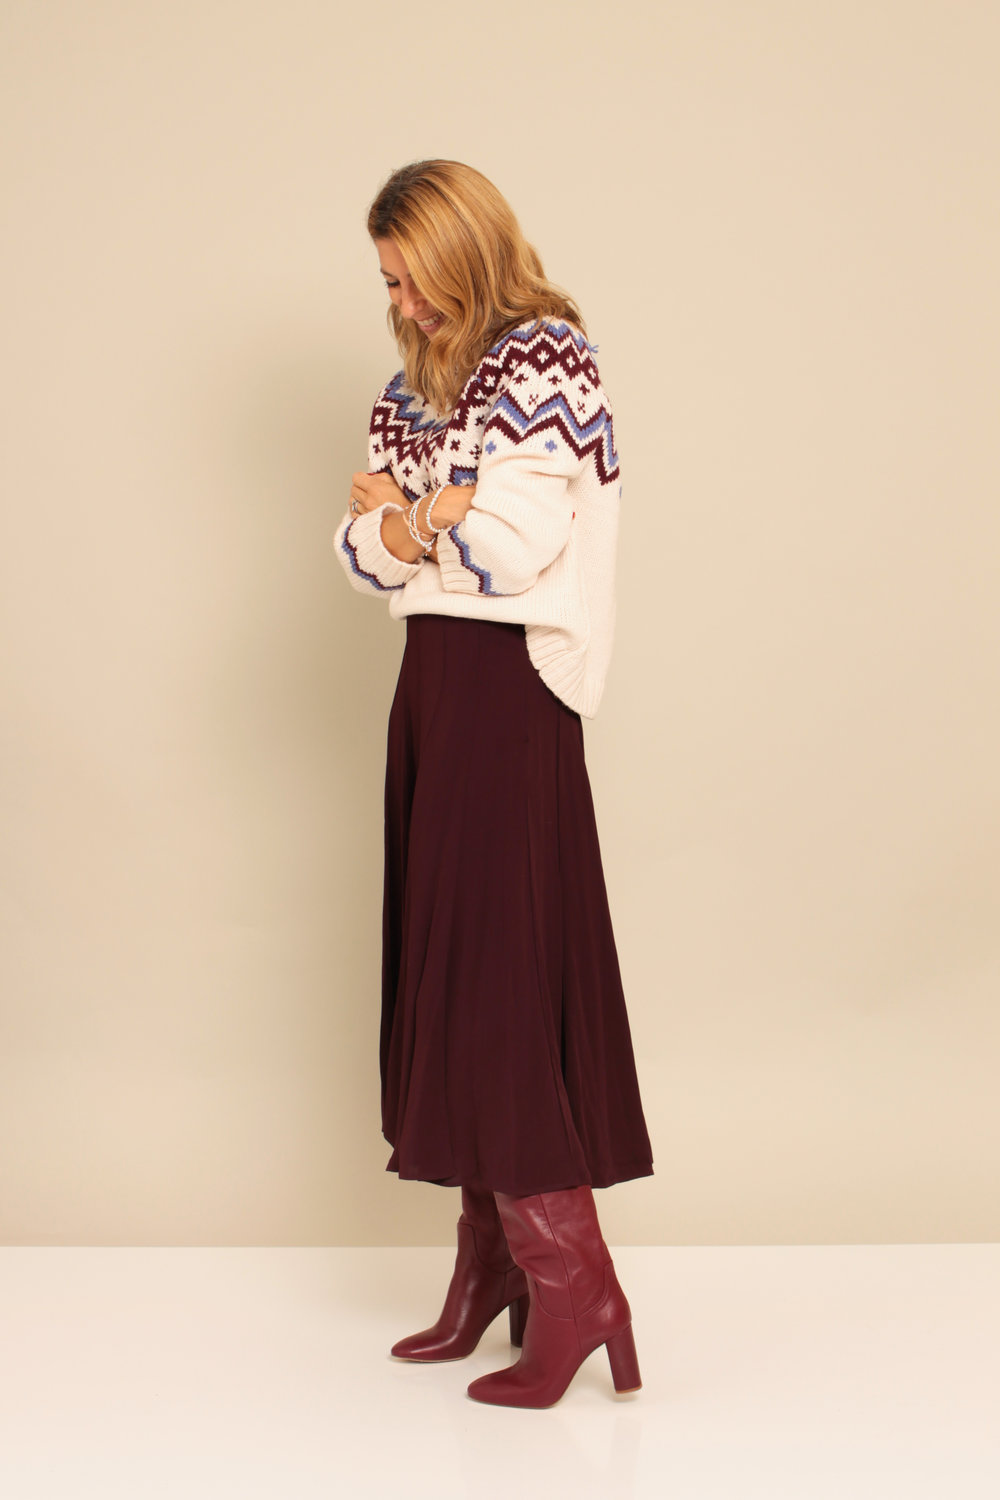 Jumper: £42  Topshop  Surprisingly soft  Love the colours  Skirt: £89.95  Massimo Dutti